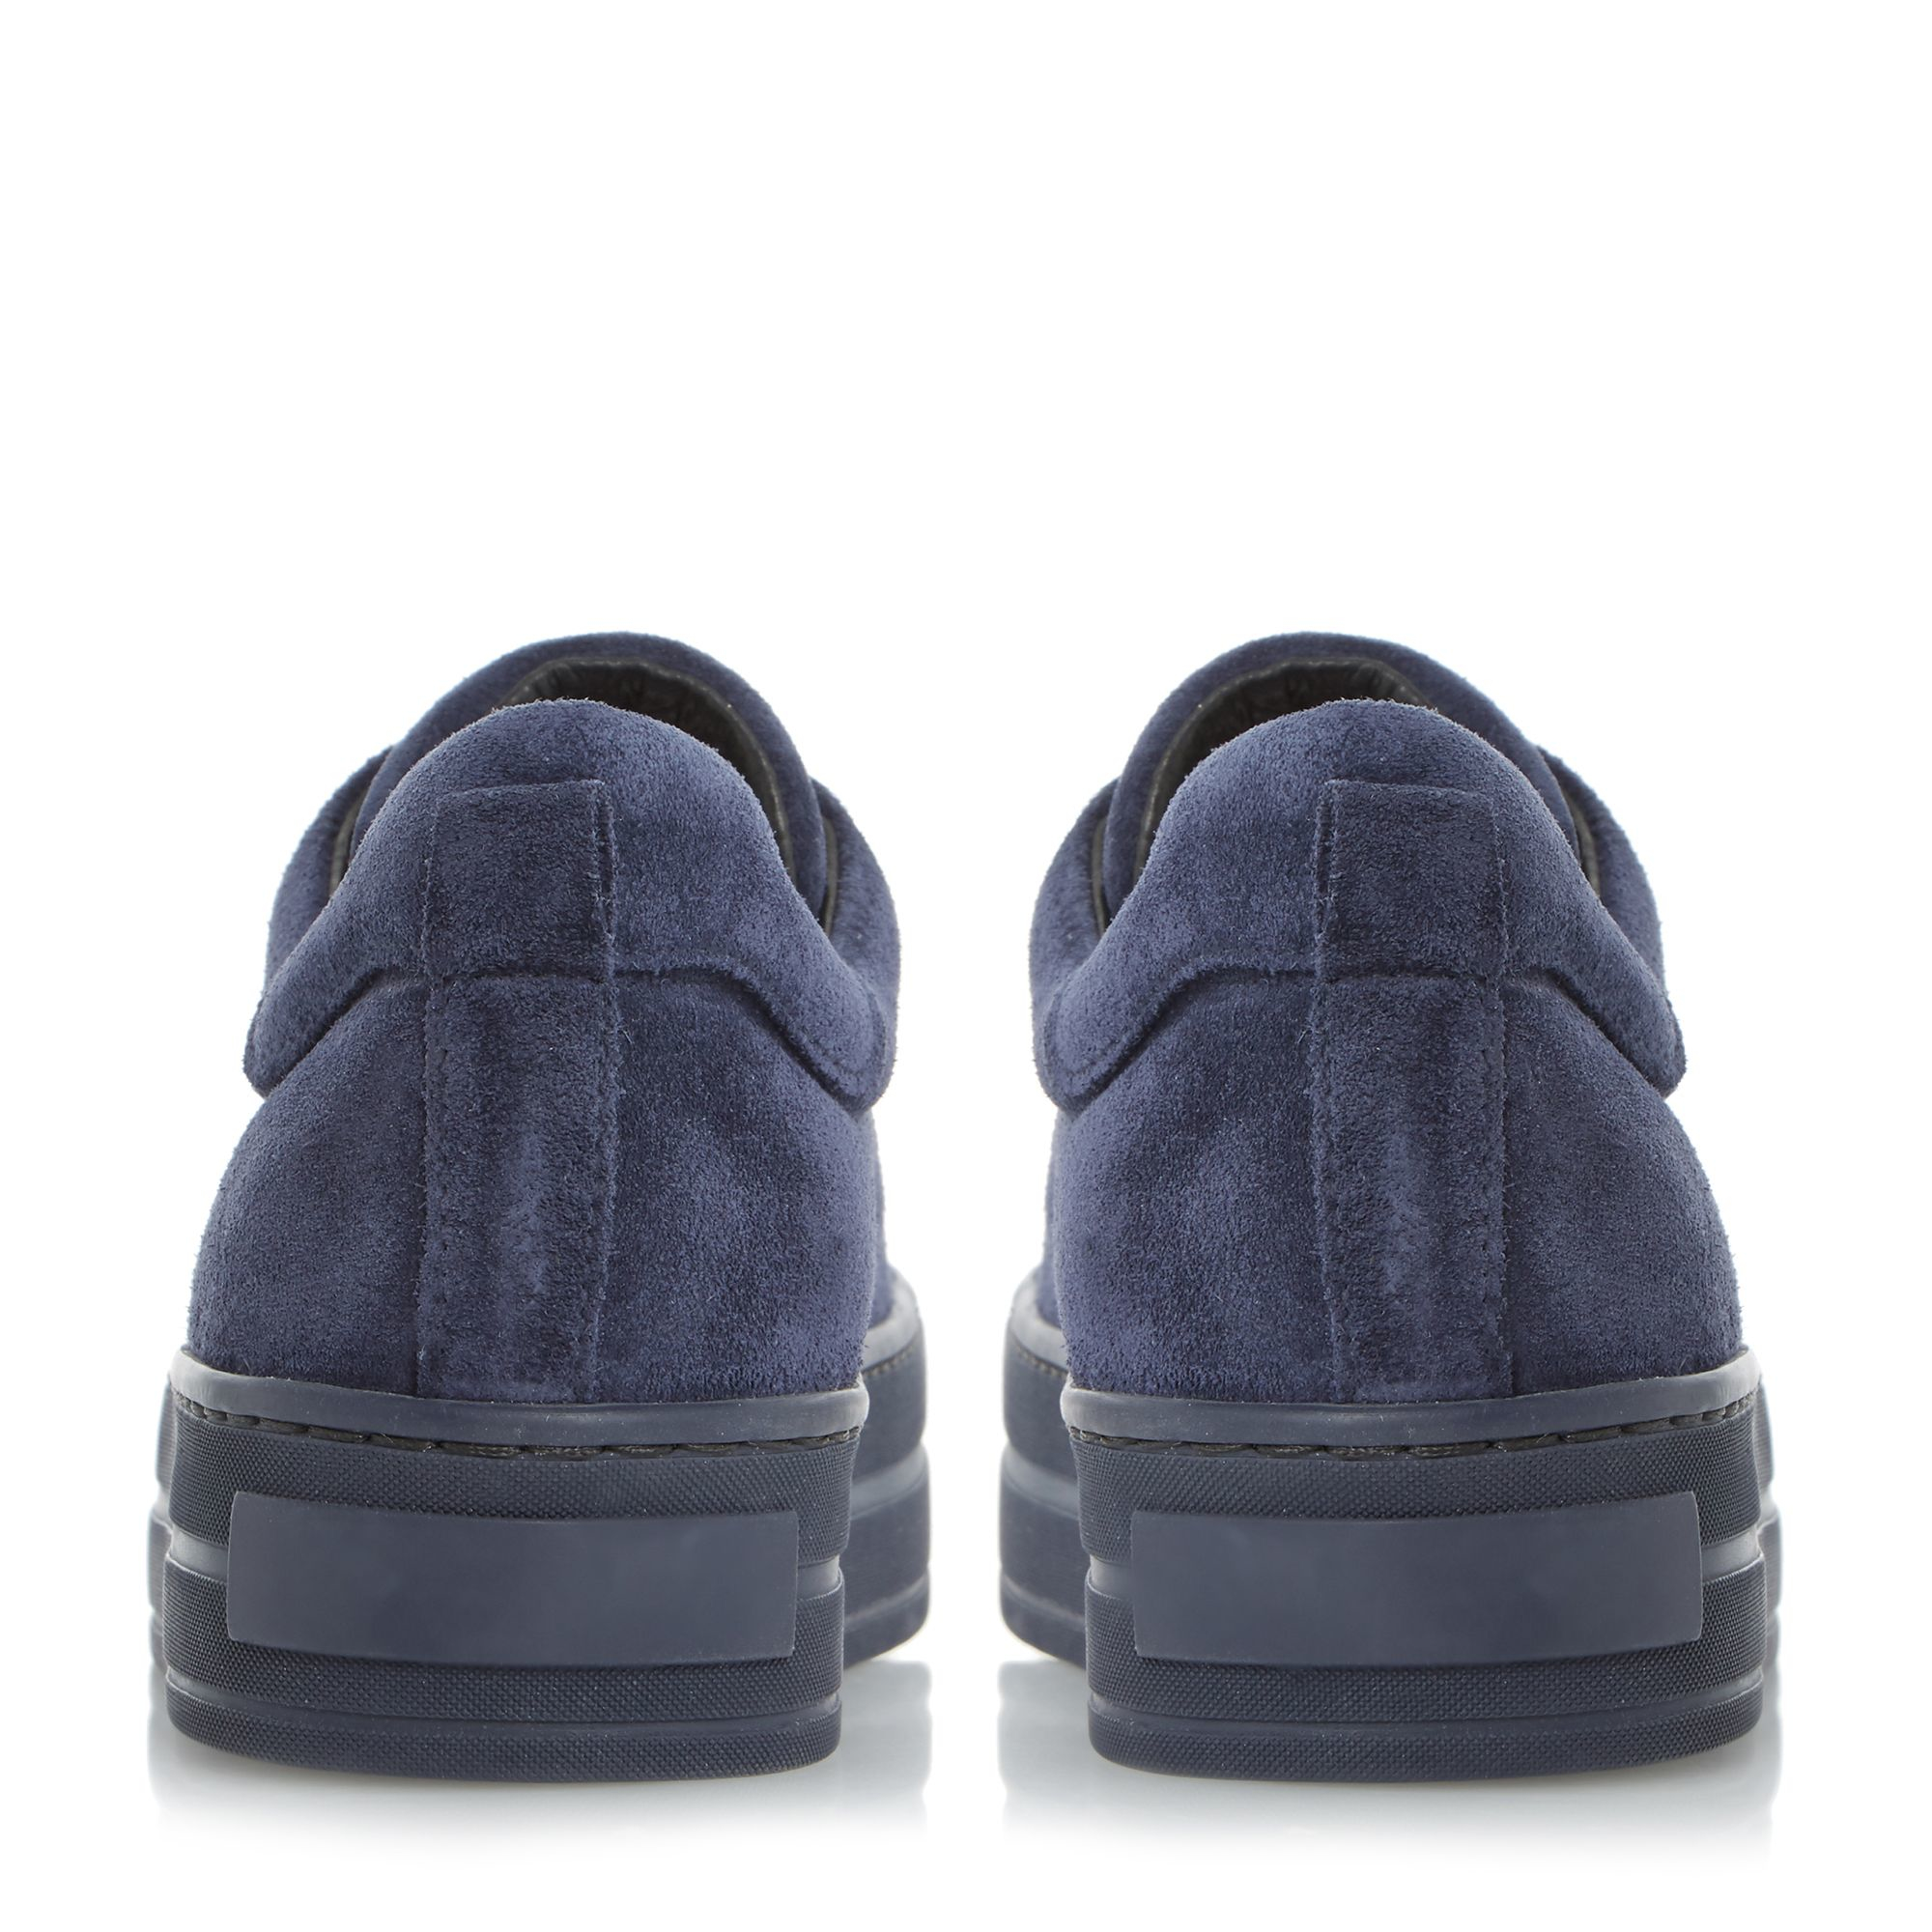 Dune Black Leather Export All Tonal Trainers in Navy (Blue)